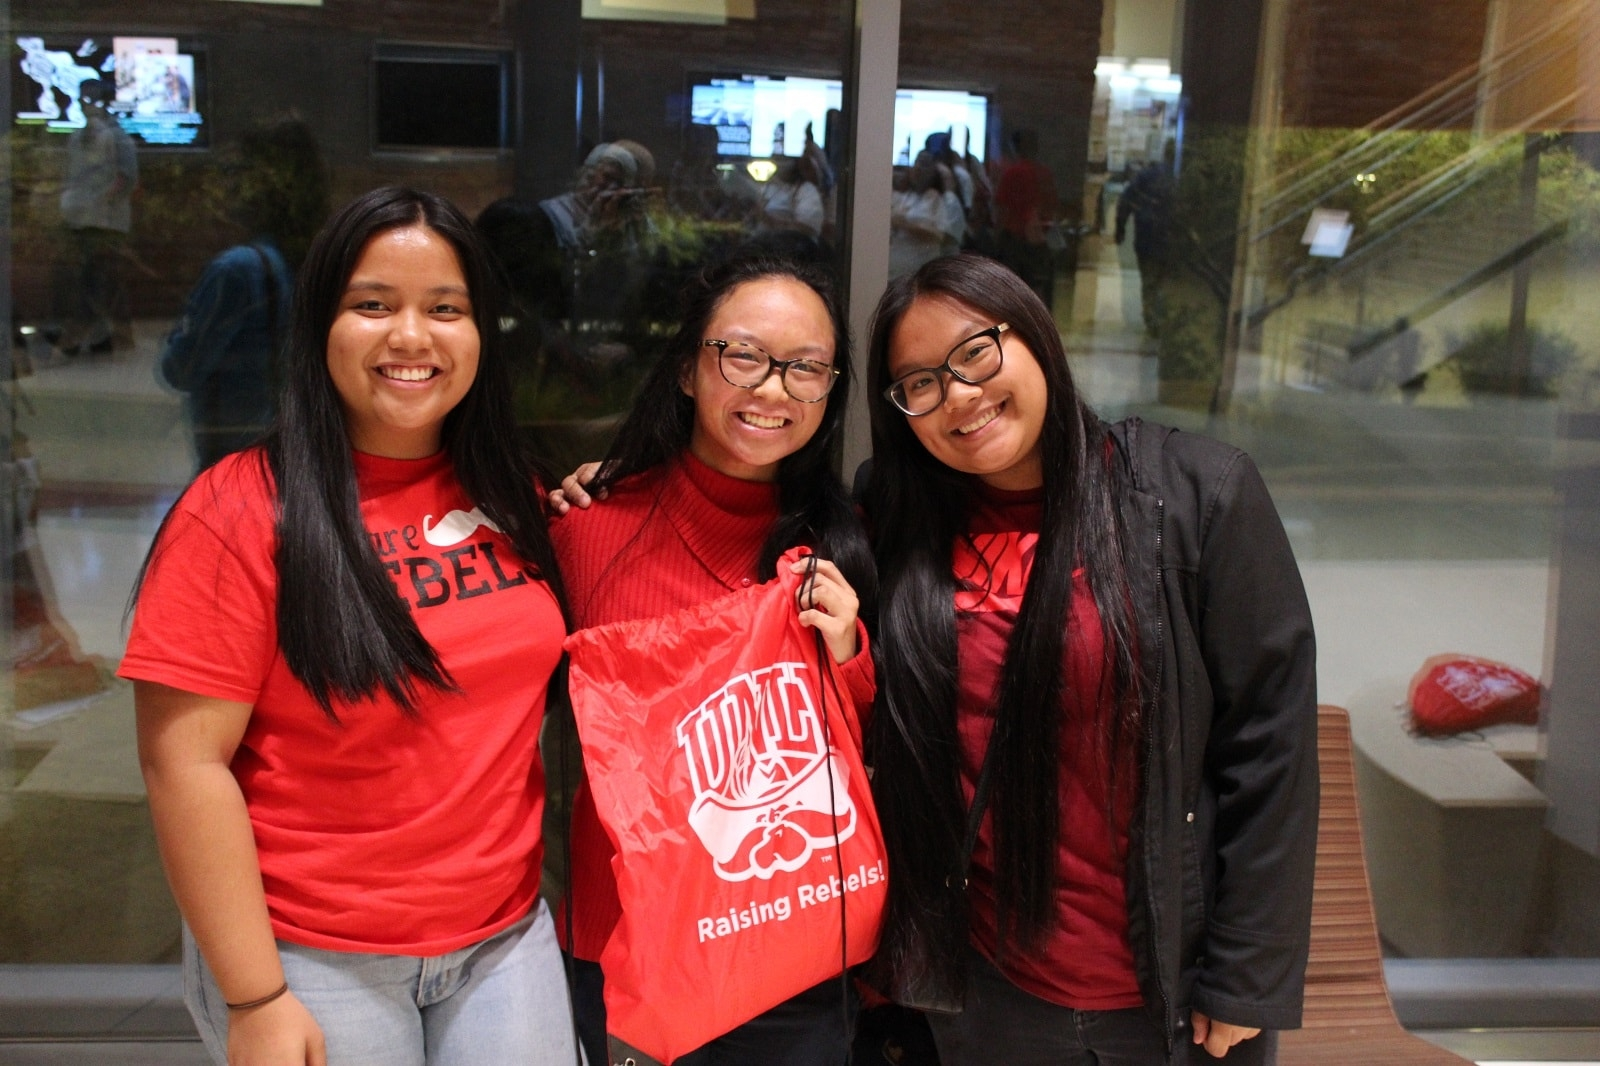 STEM Fall 2017 Series - Participants show off their UNLV spirit gear.